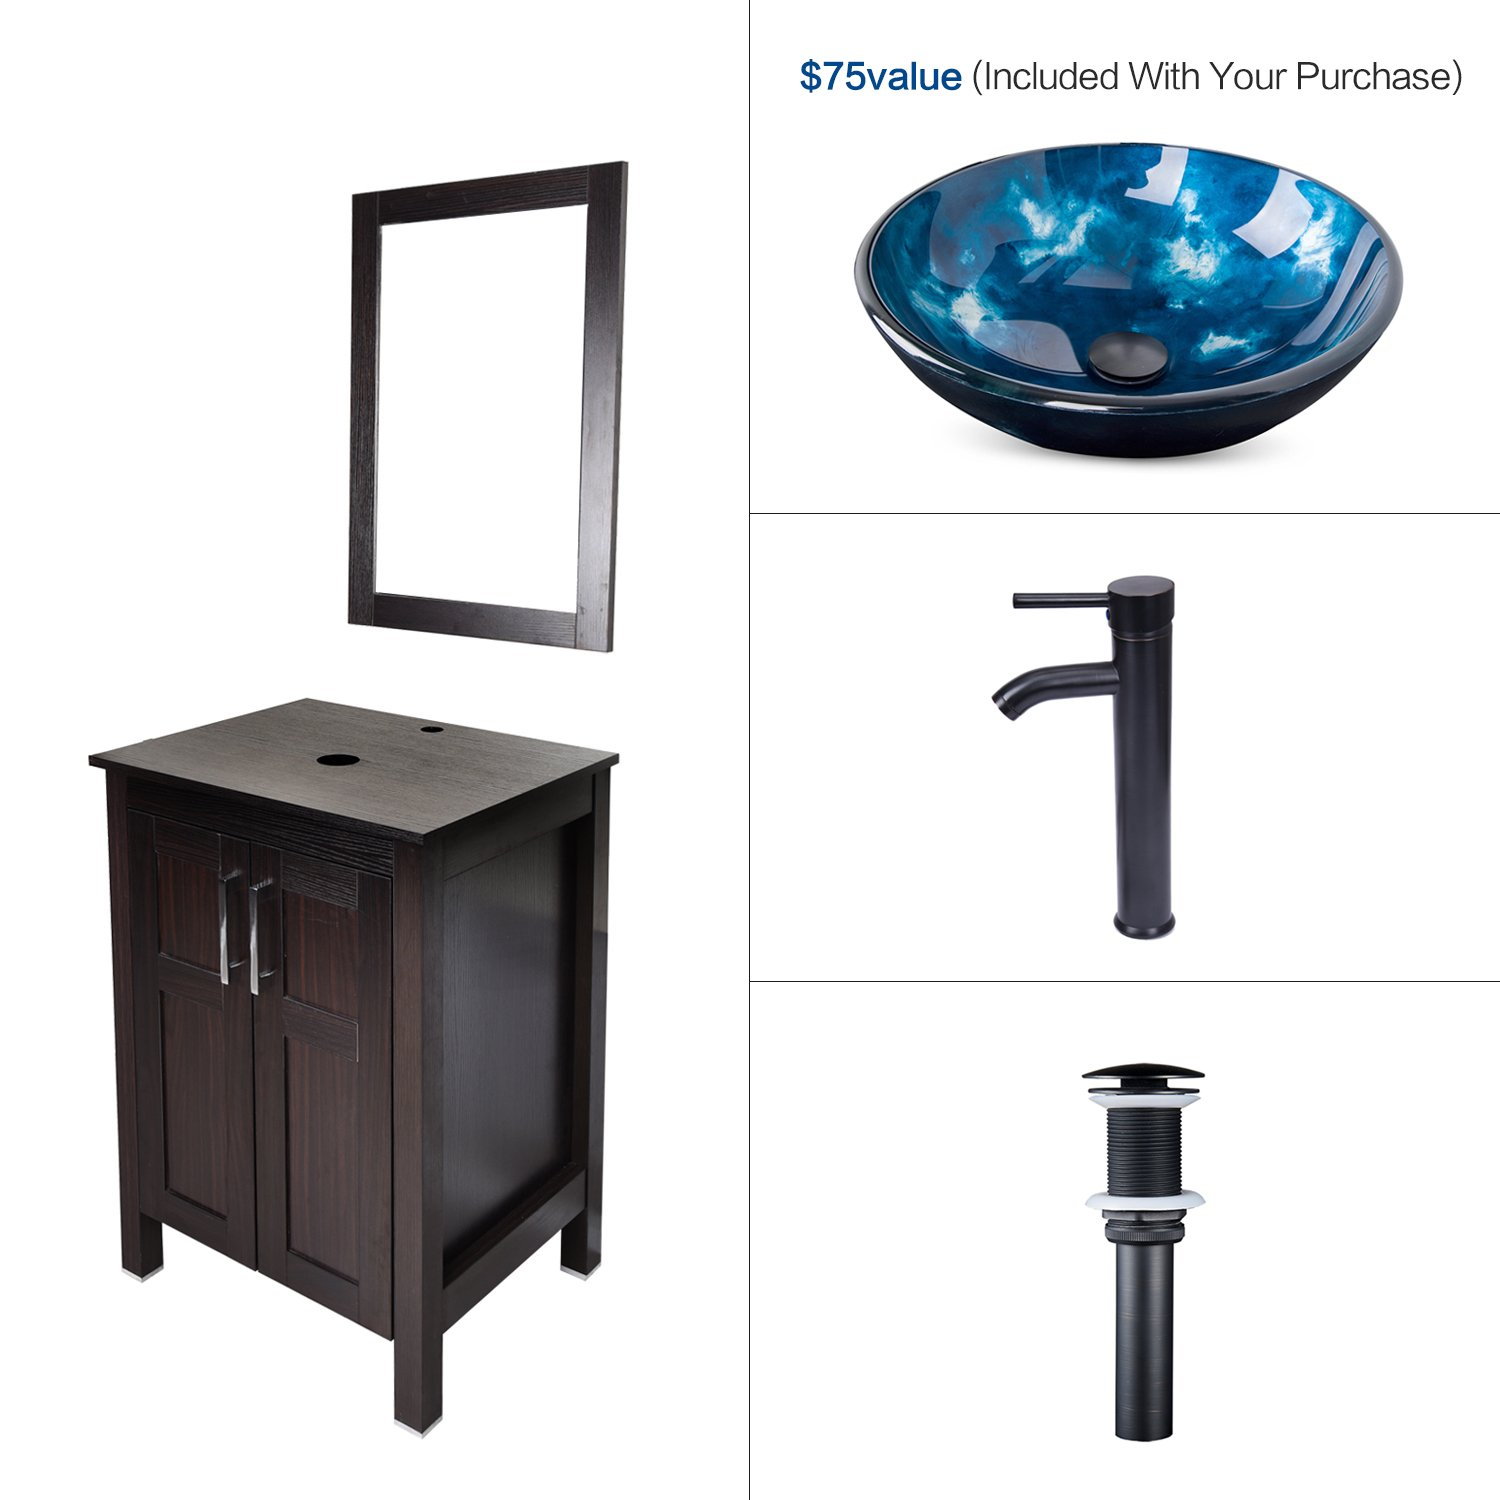 Elecwish USBA20090+USBA20077 Bathroom Vanity and Sink Combo, Stand Cabinet and Tempered Blue Glass Vessel Sink, Orb Faucet and Pop Up Drain, Mirror, Mounting Ring